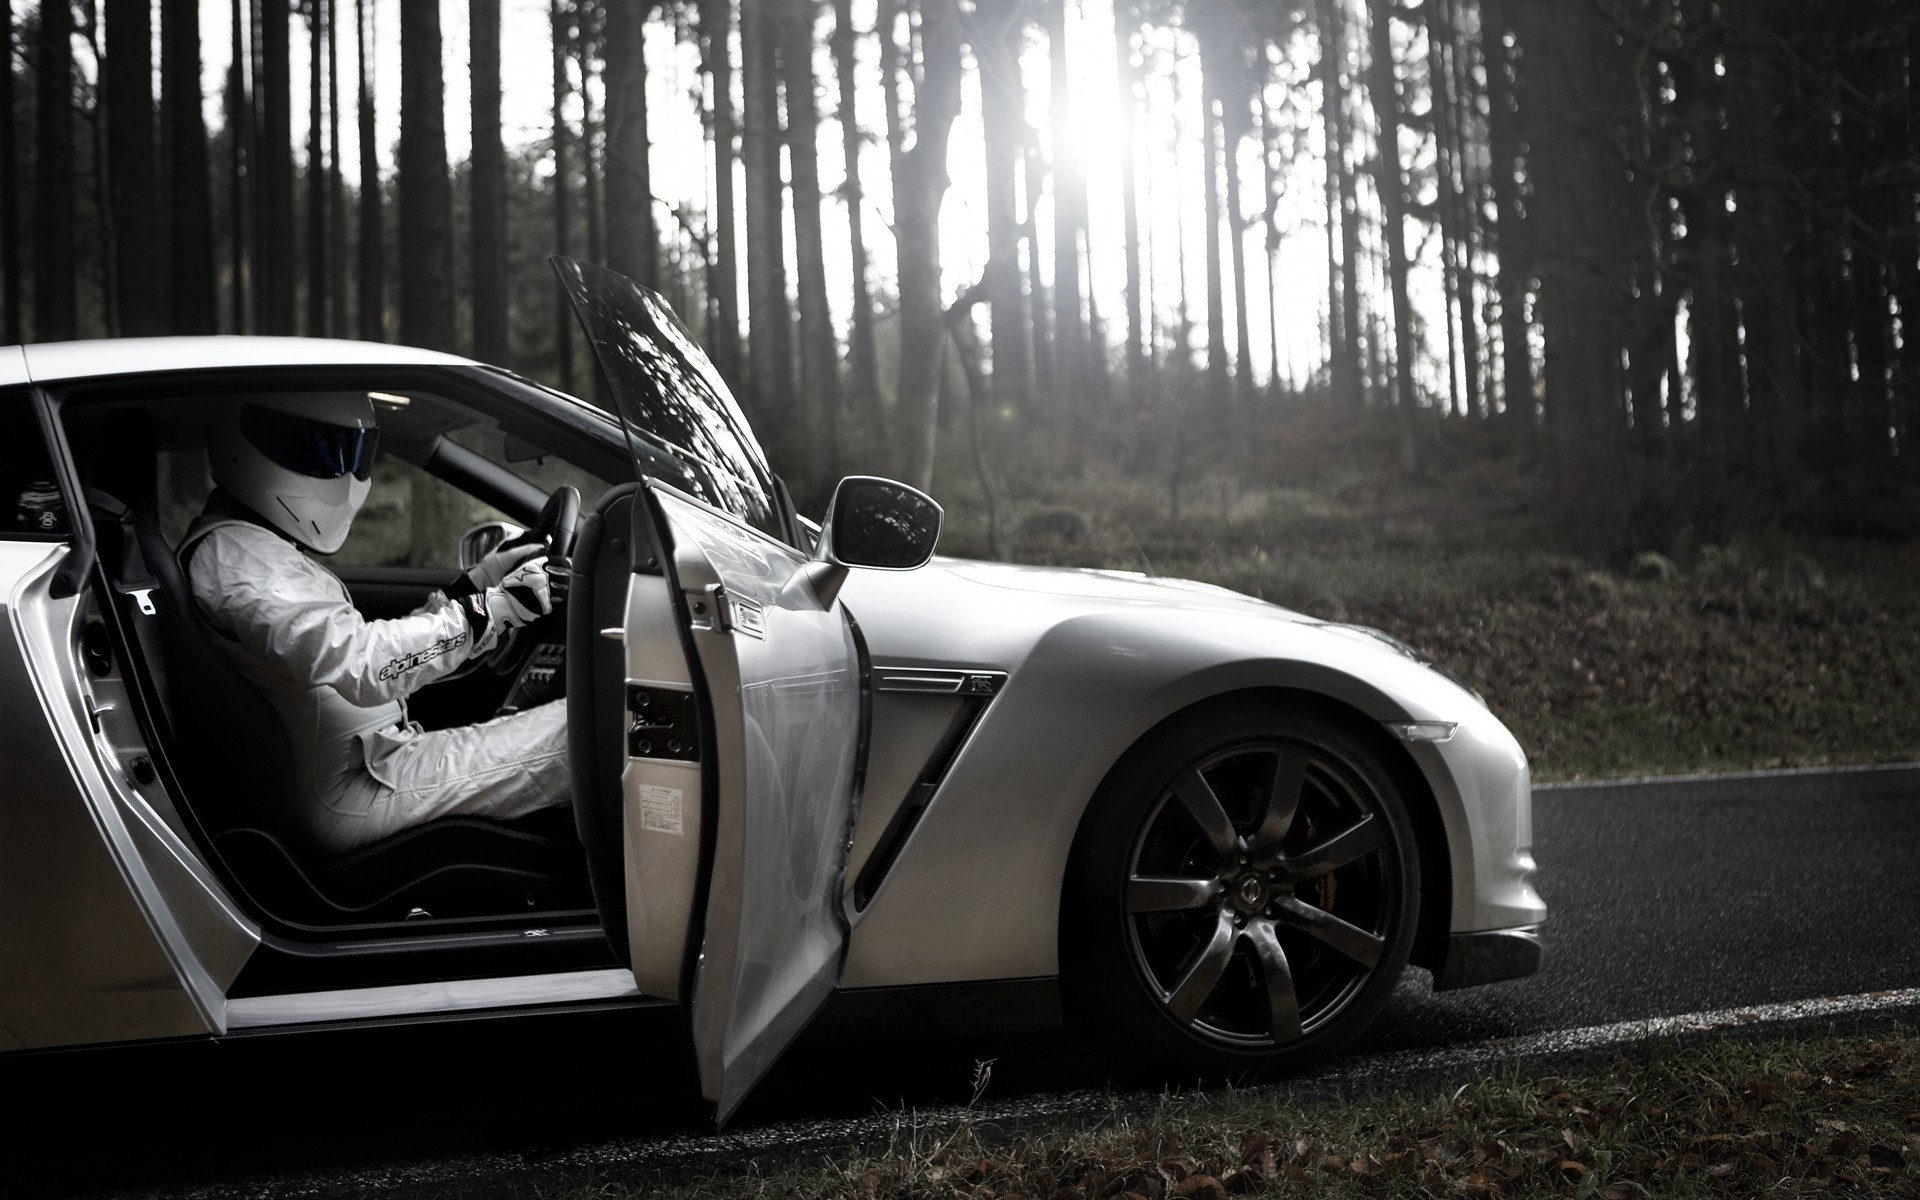 Nissan Gtr R35 The Stig Alpinestars Cars Wallpaper